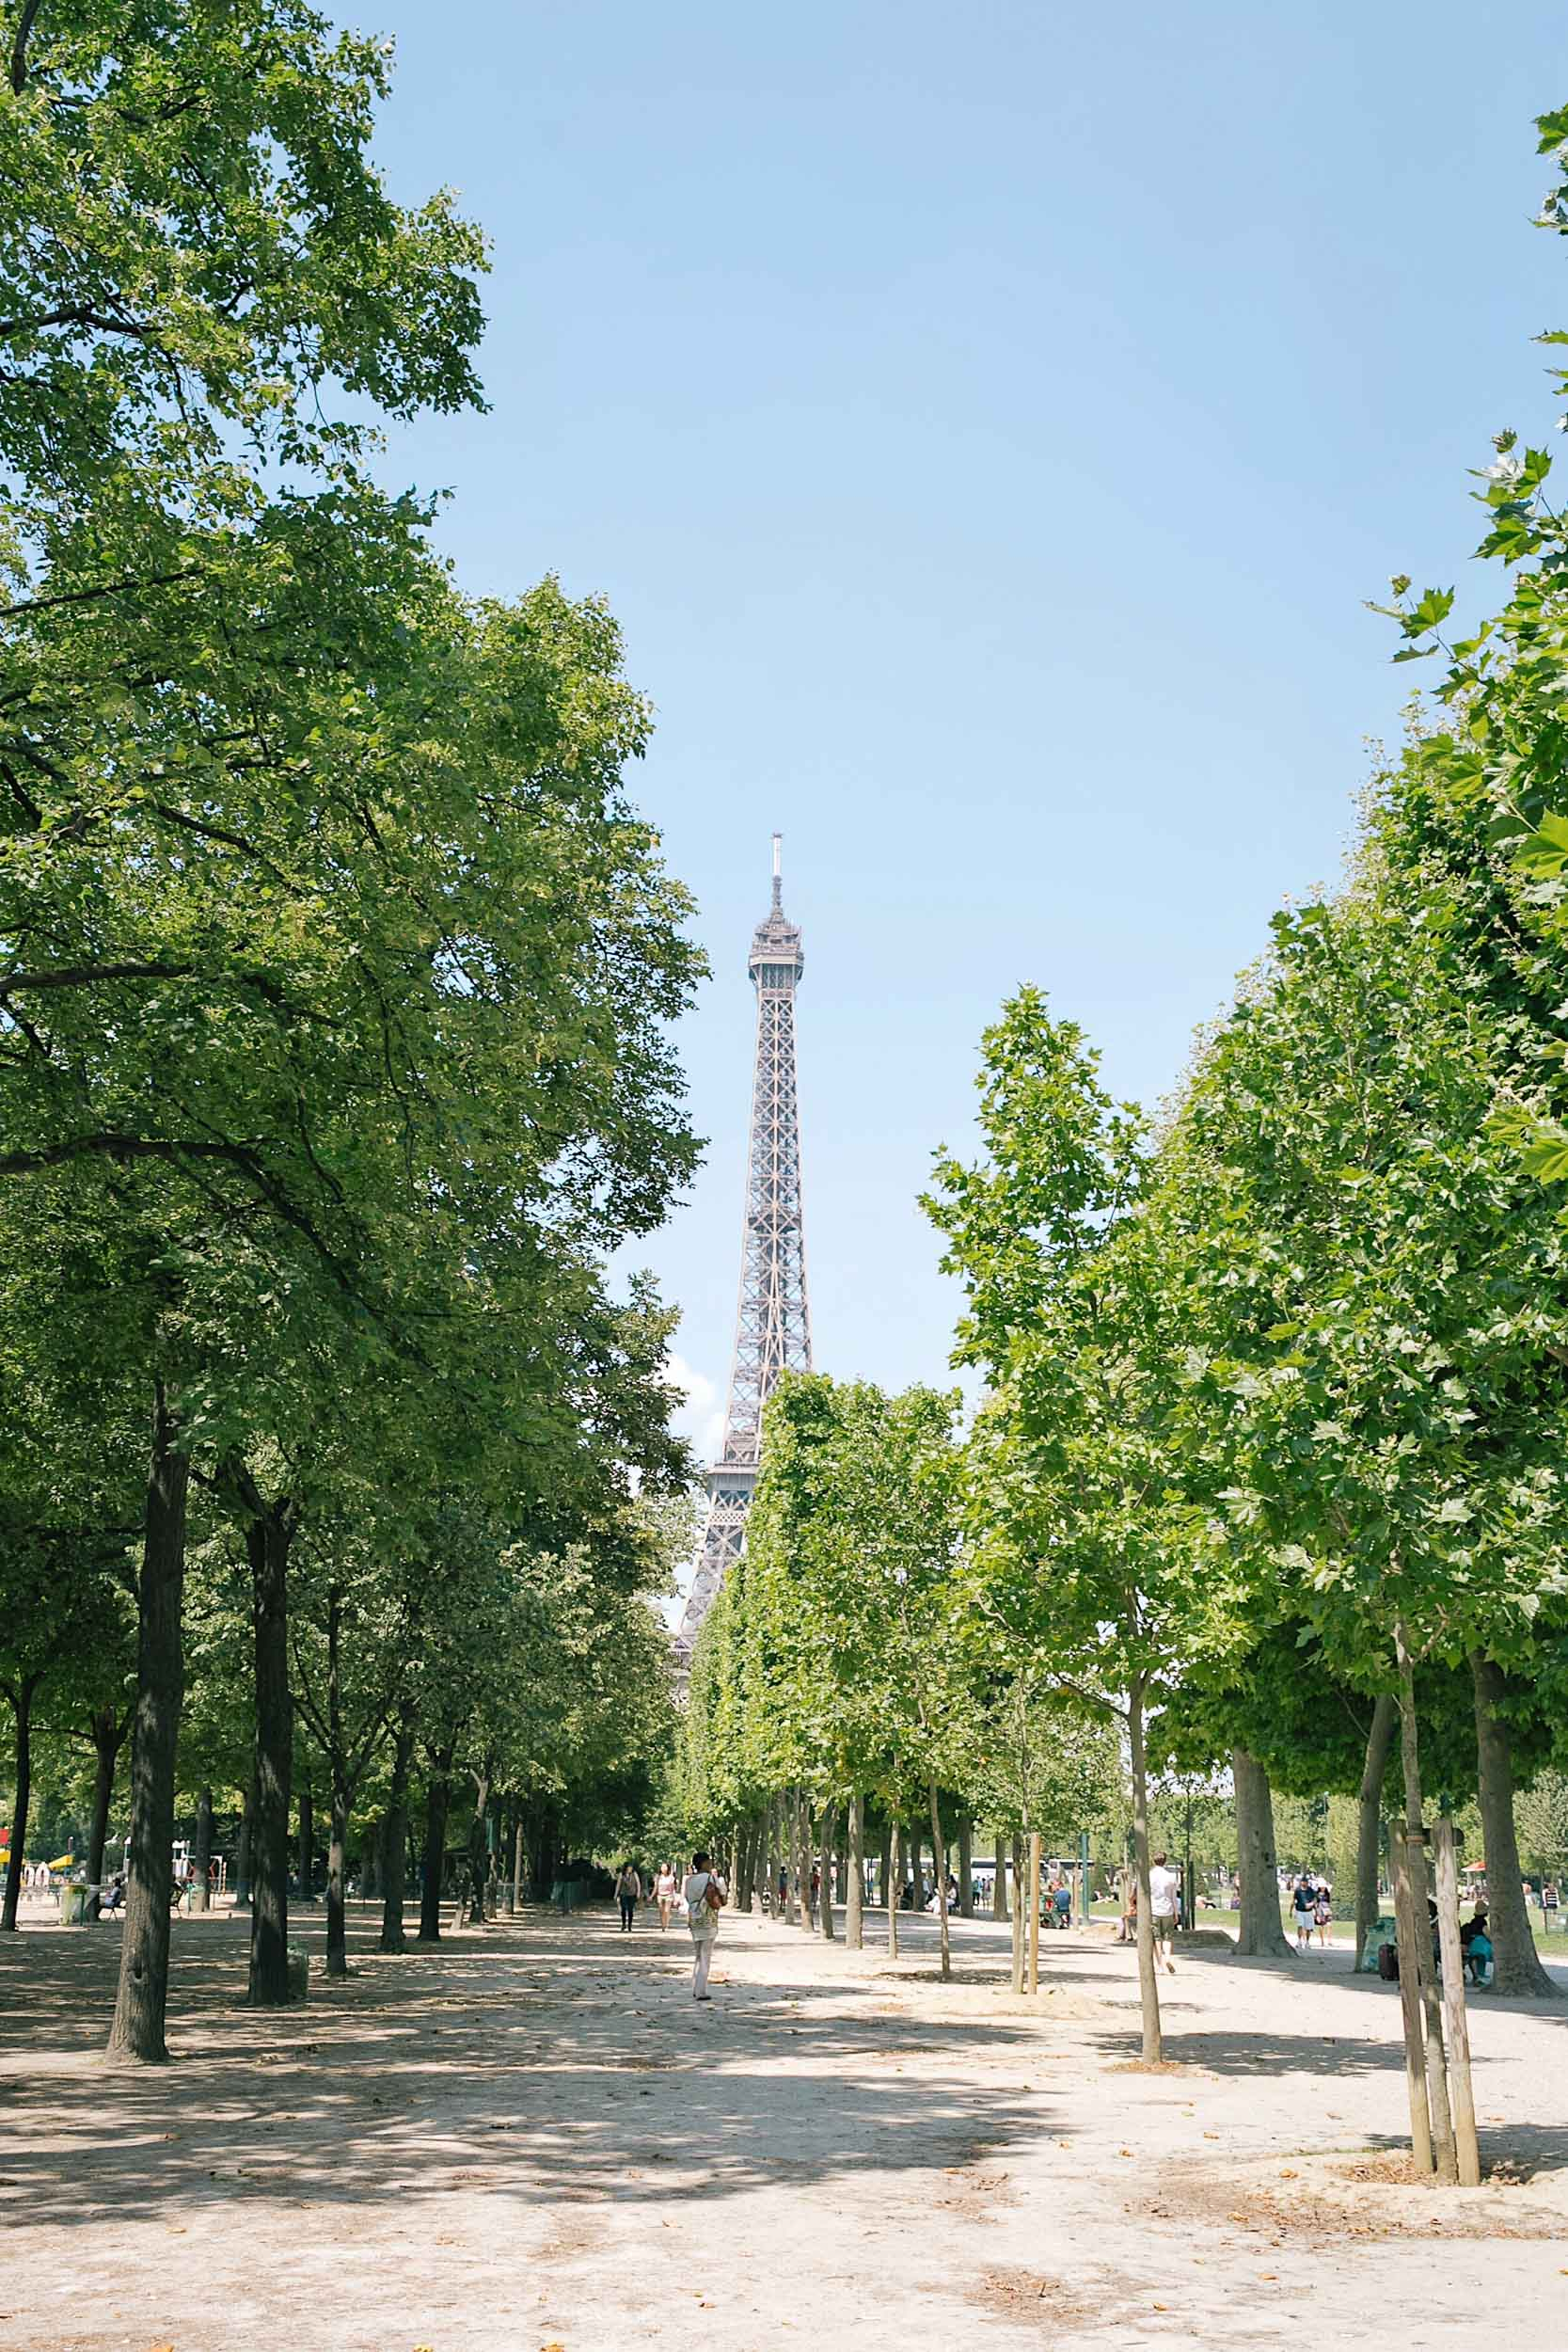 Summer is arguably the most beautiful and lively time of year in Paris